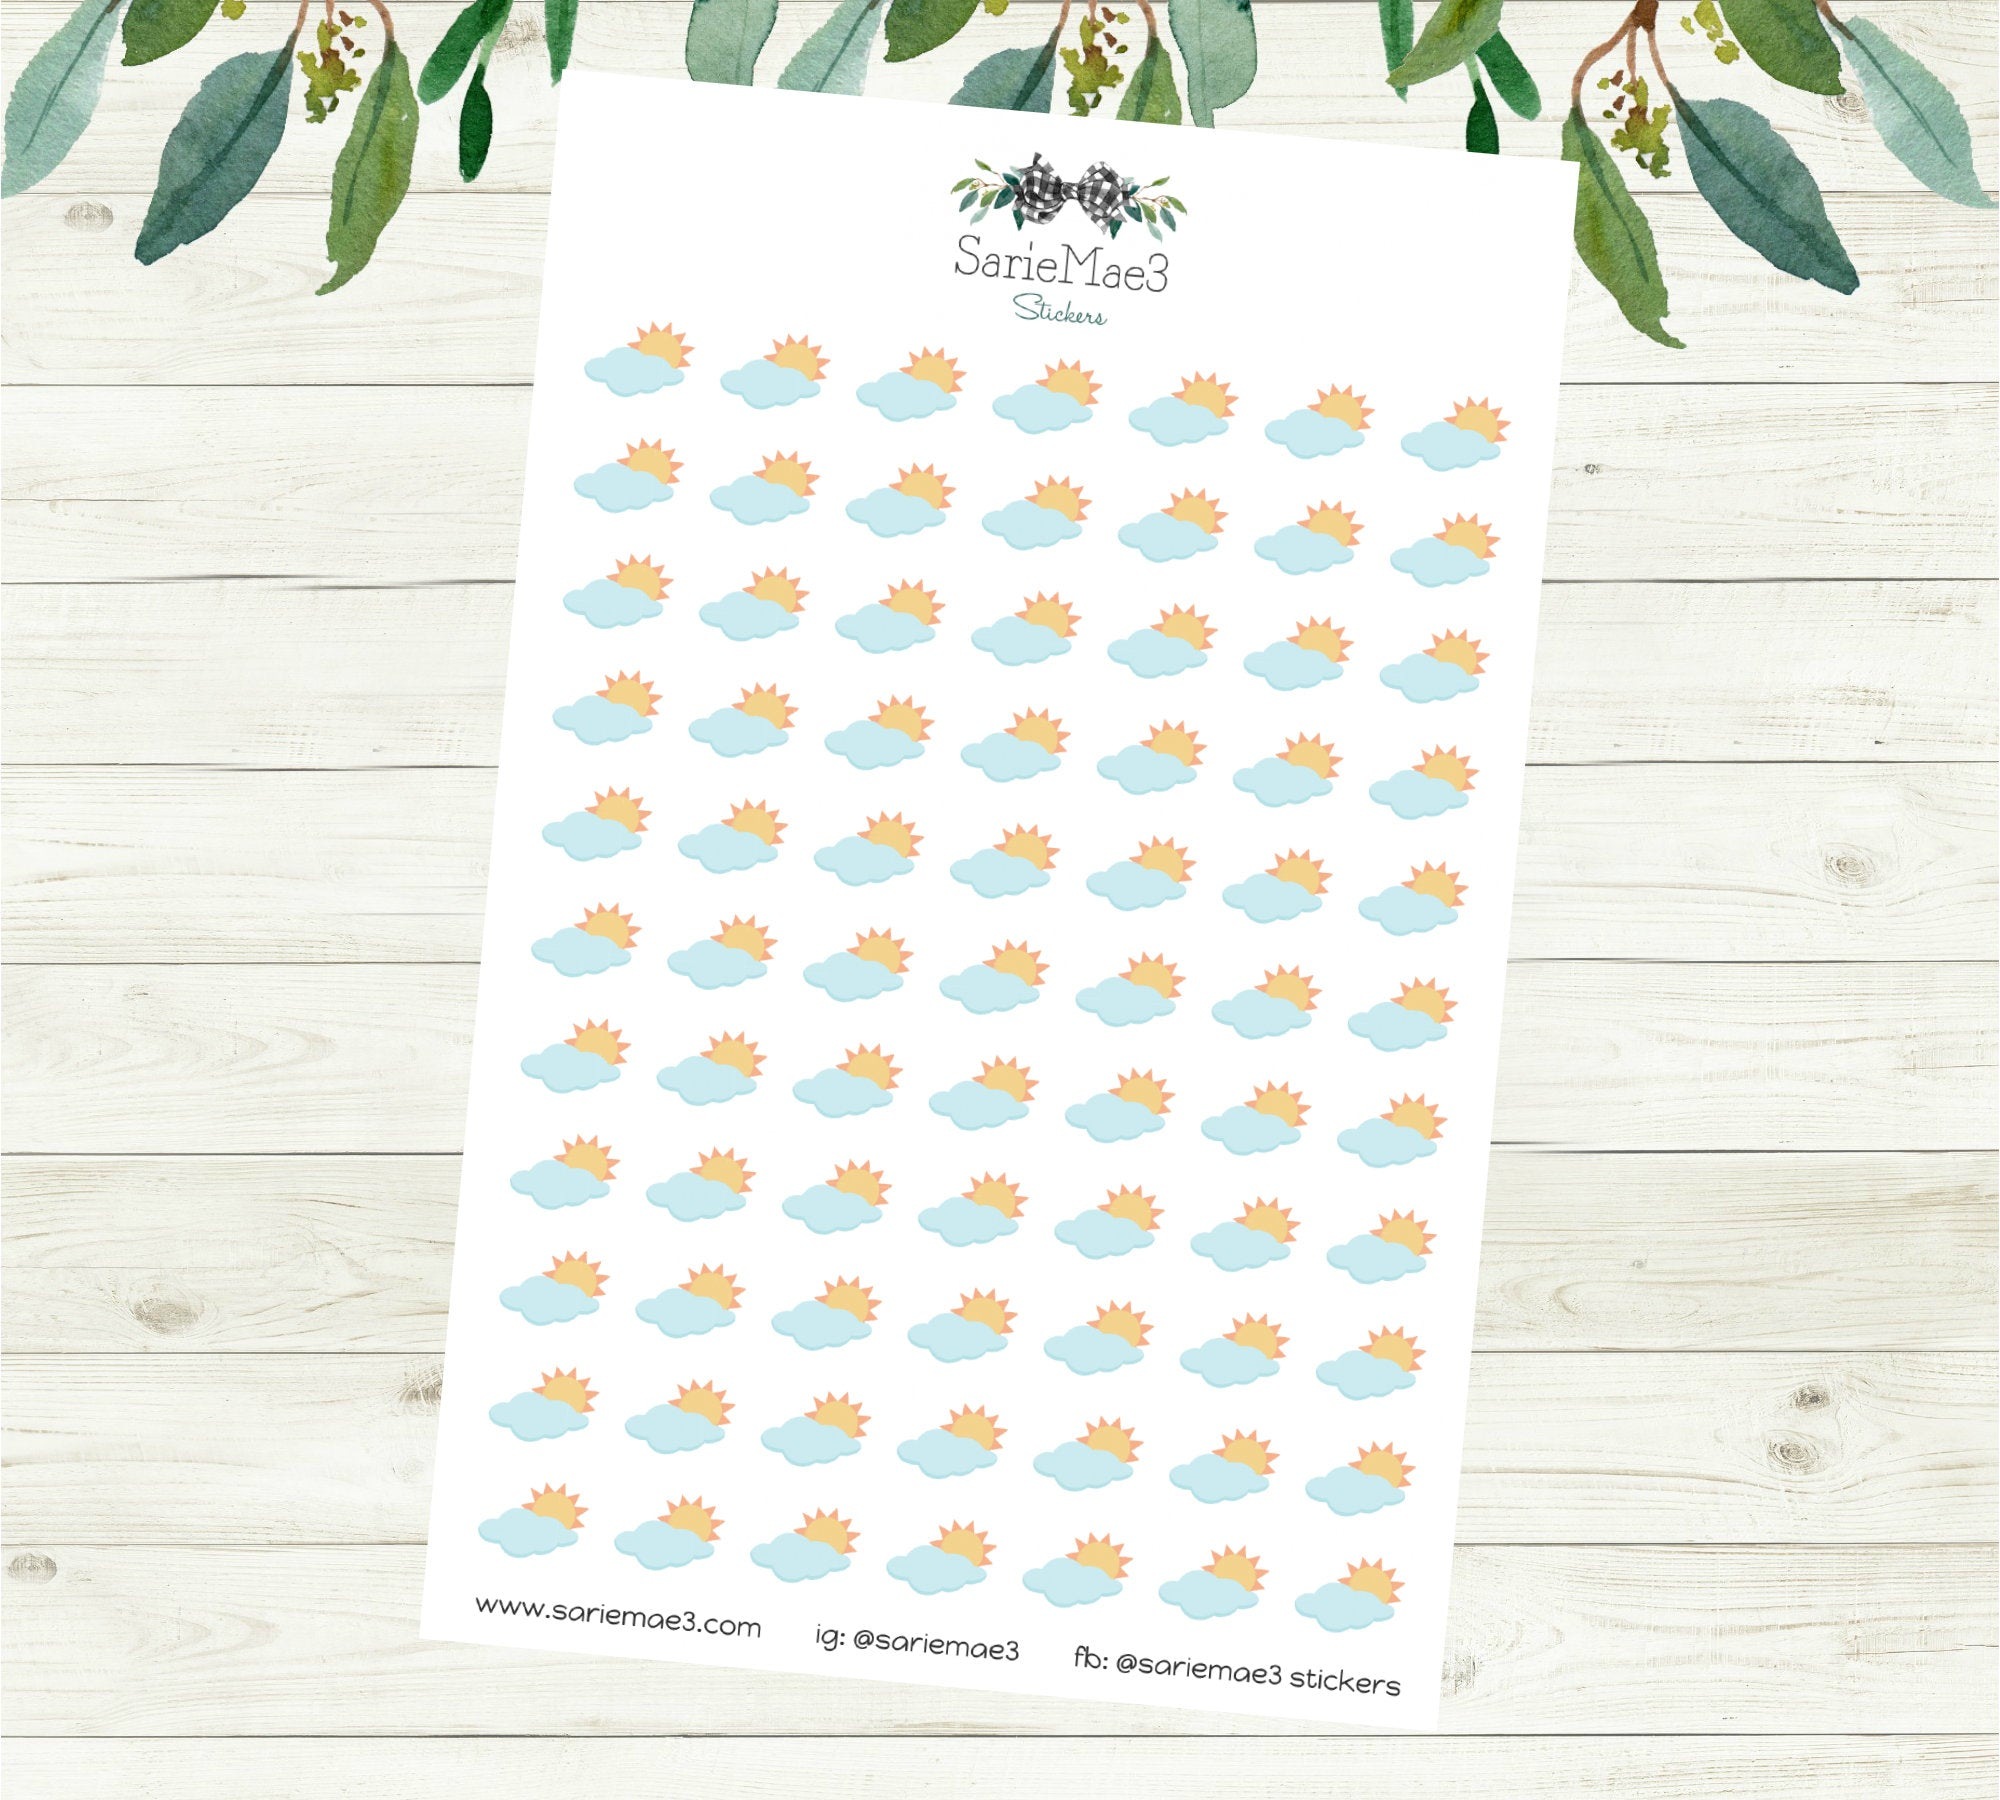 Partly Sunny Weather Stickers